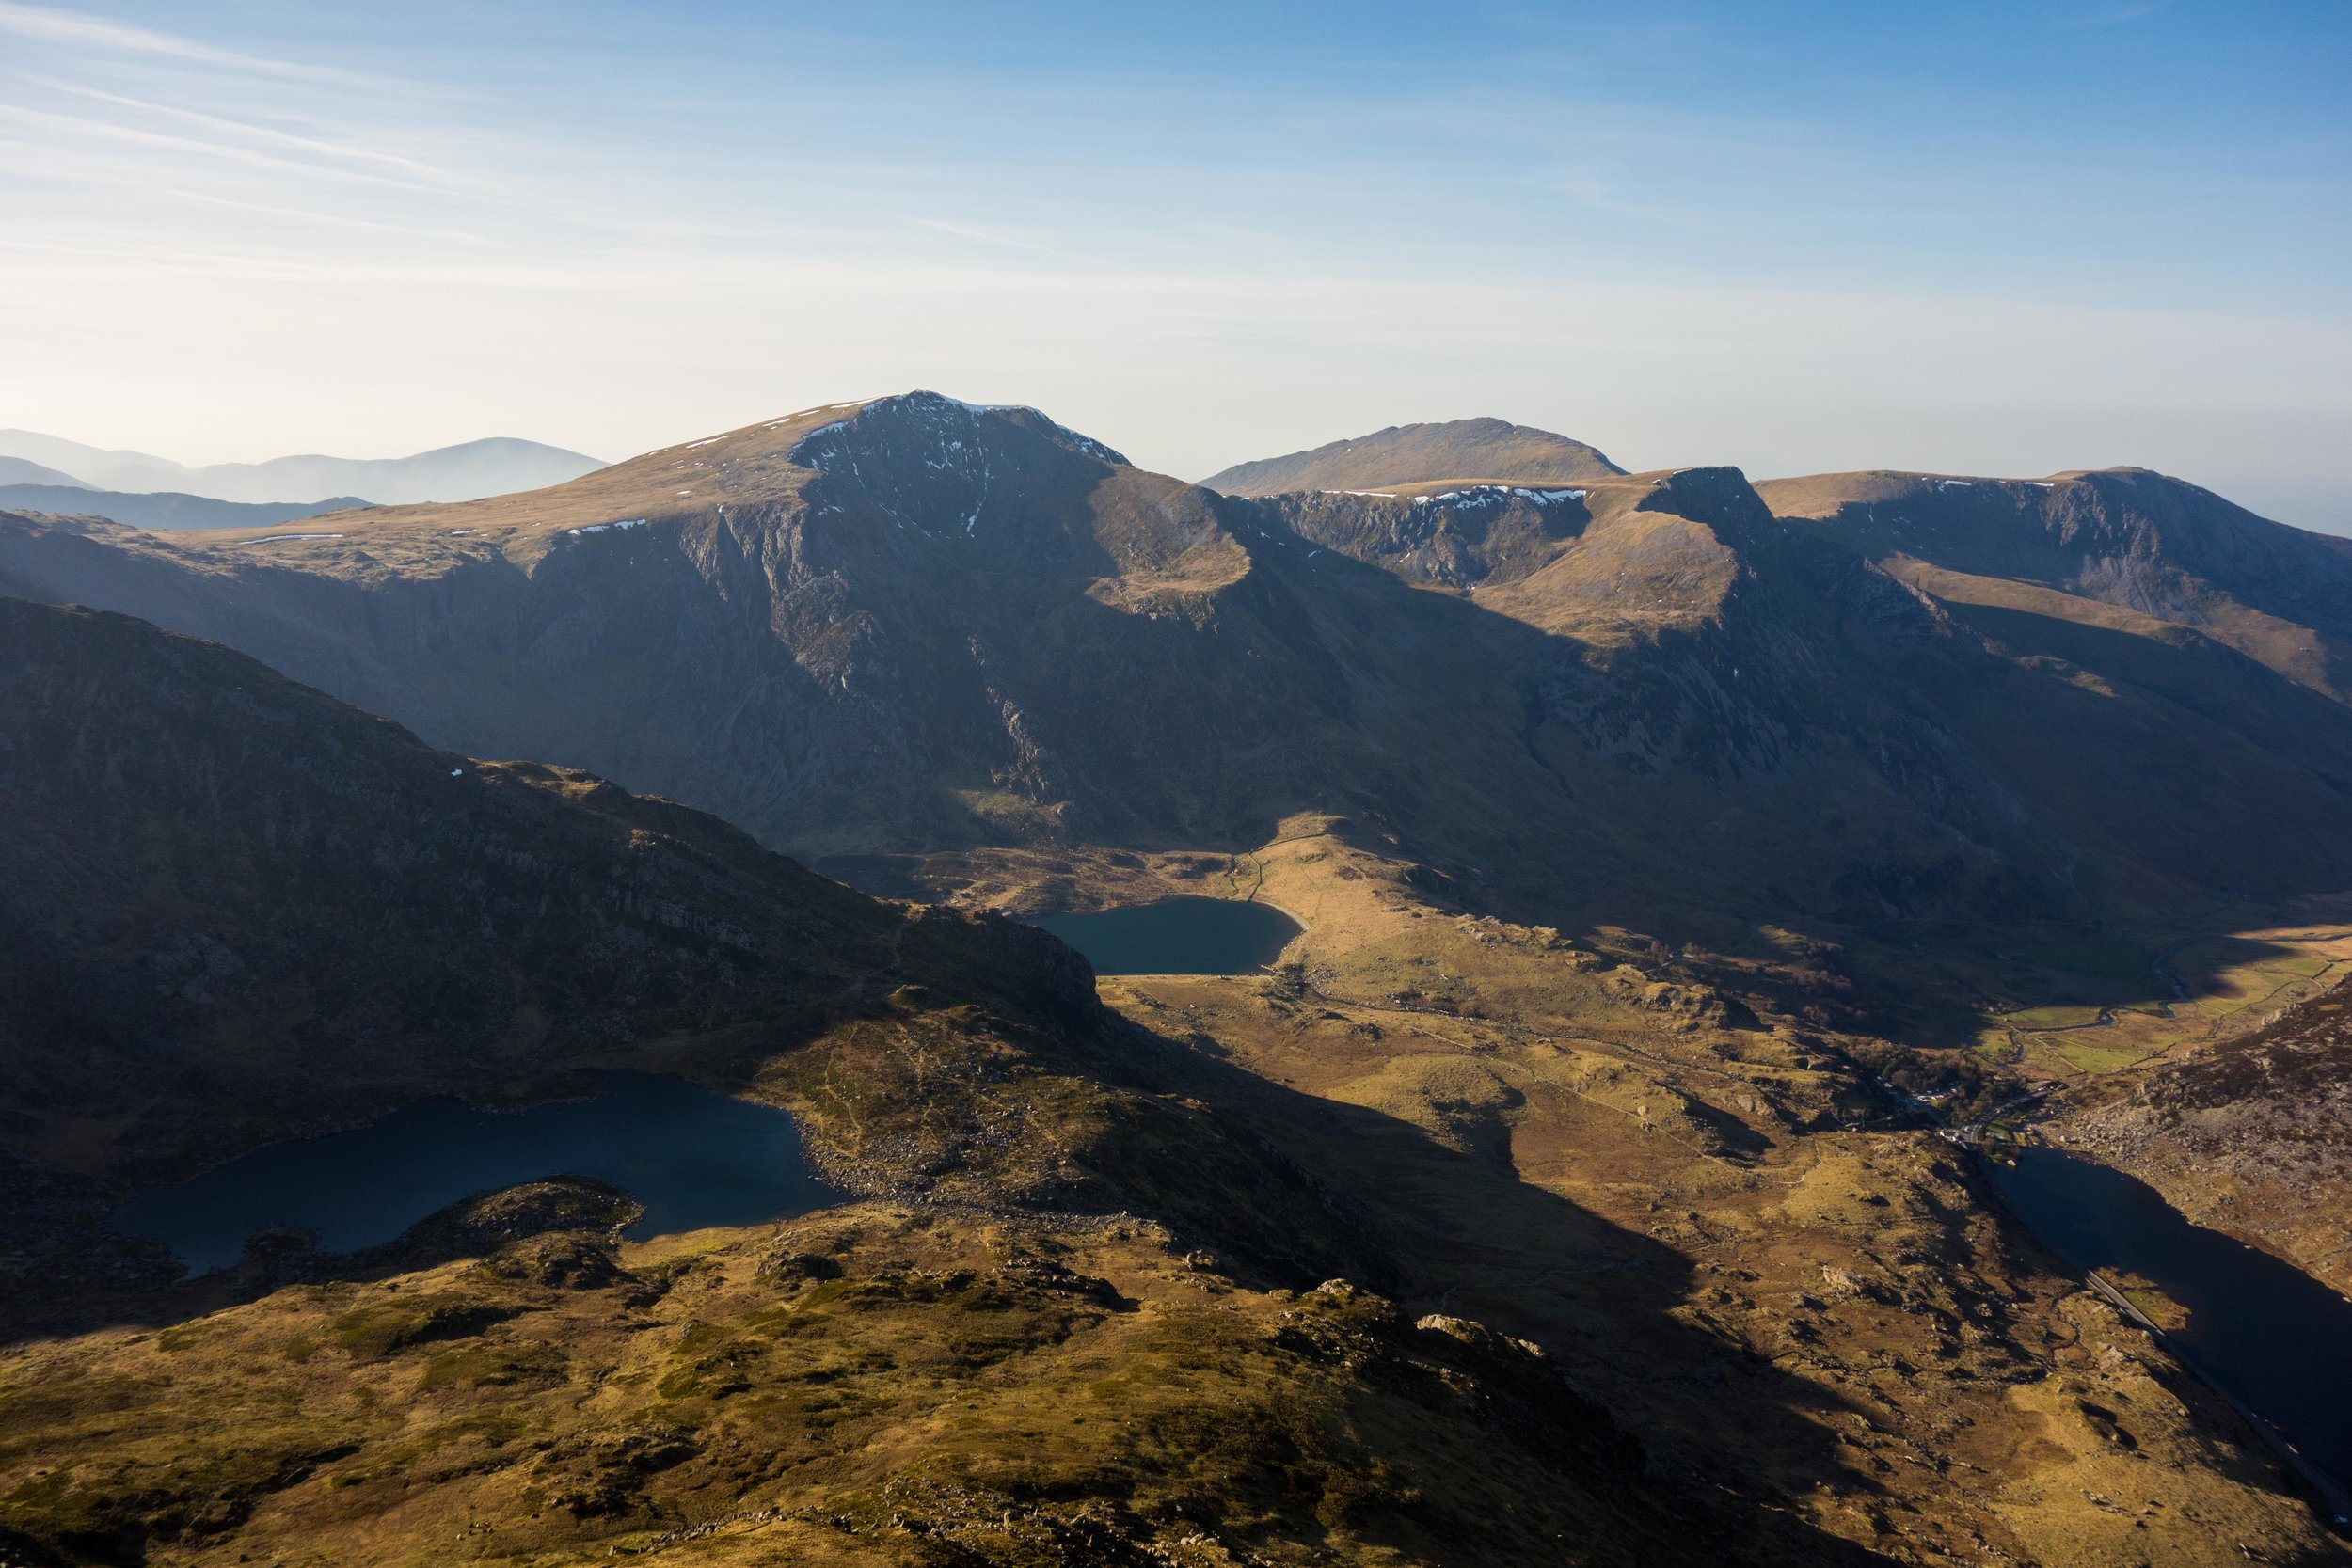 The view from the top of Tryfan over to Y Garn and Elidr Fawr